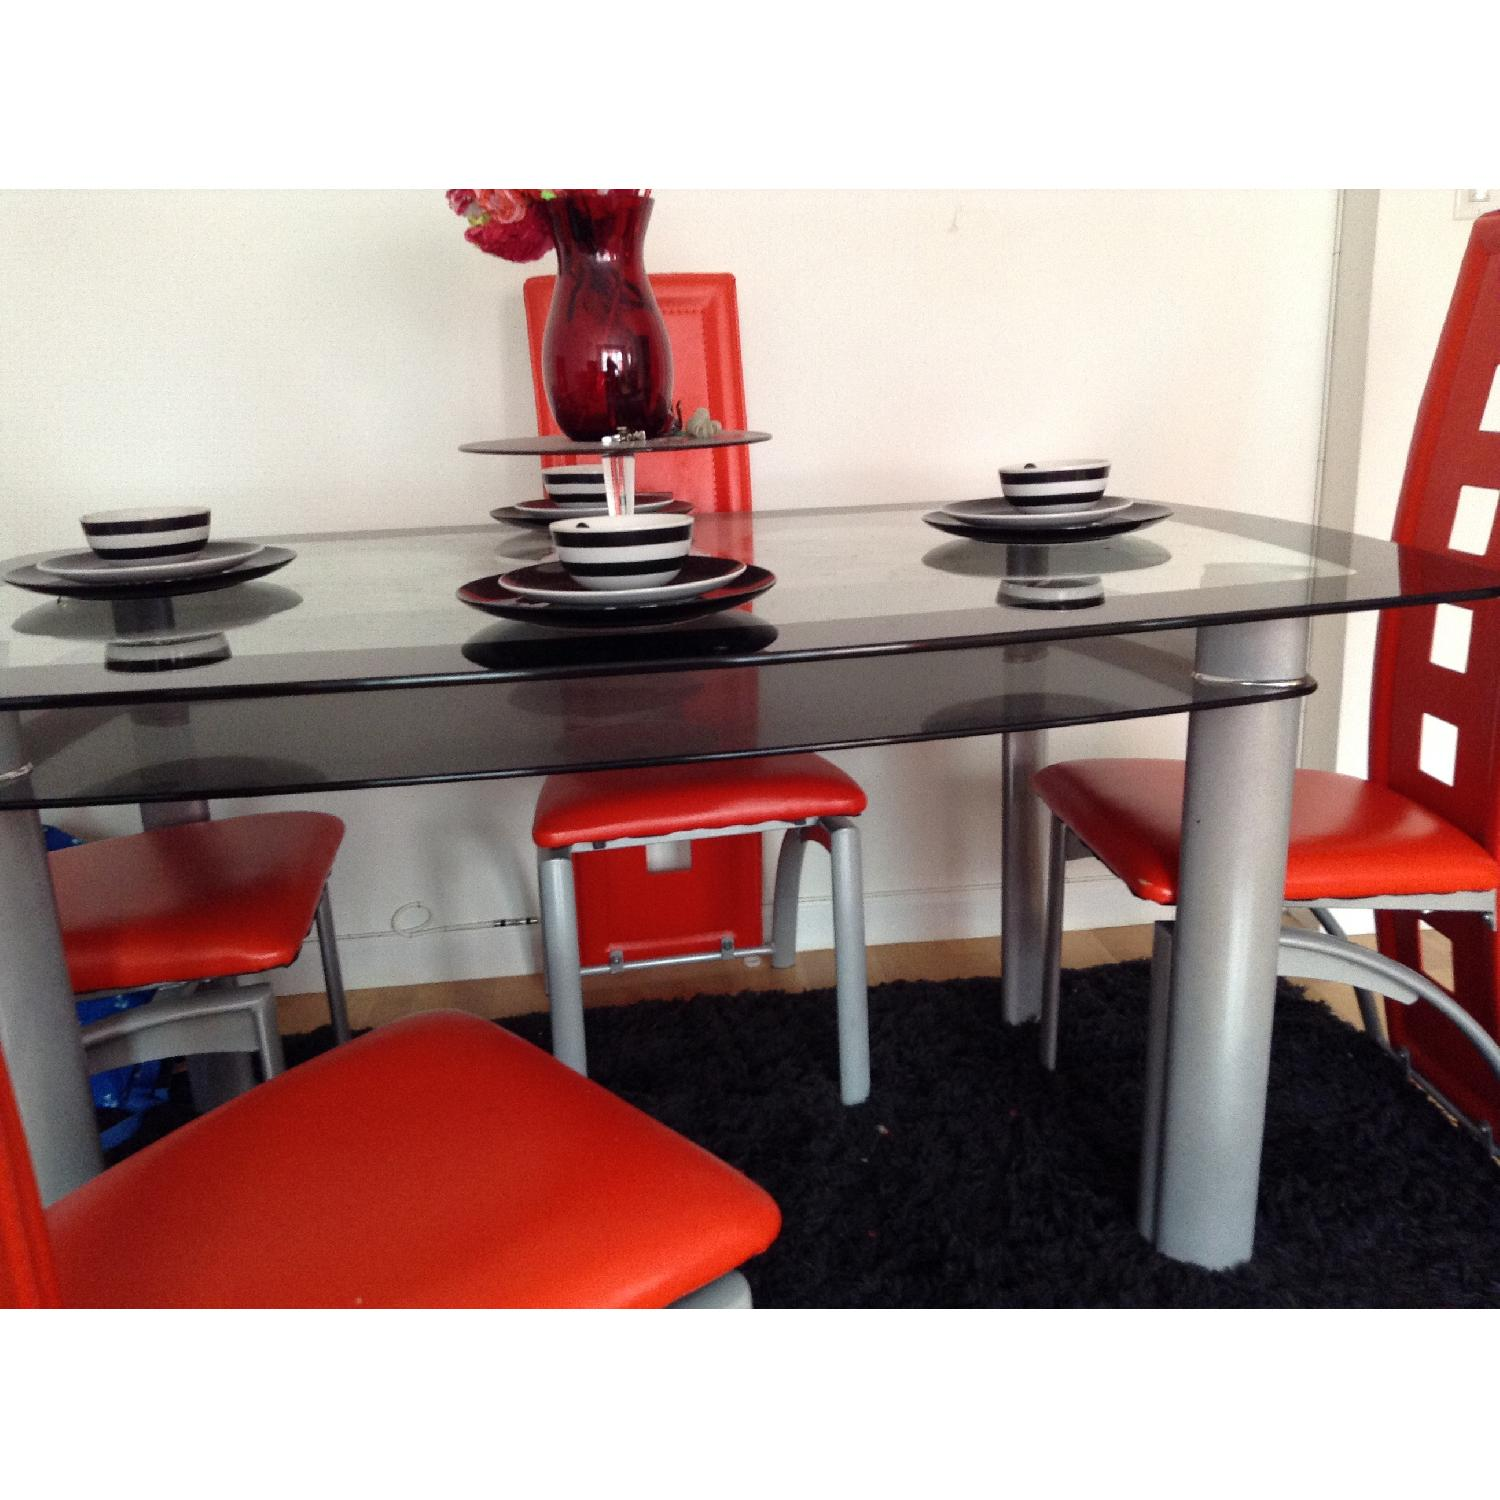 Modern Glass Table w/ 4 Chairs - image-3